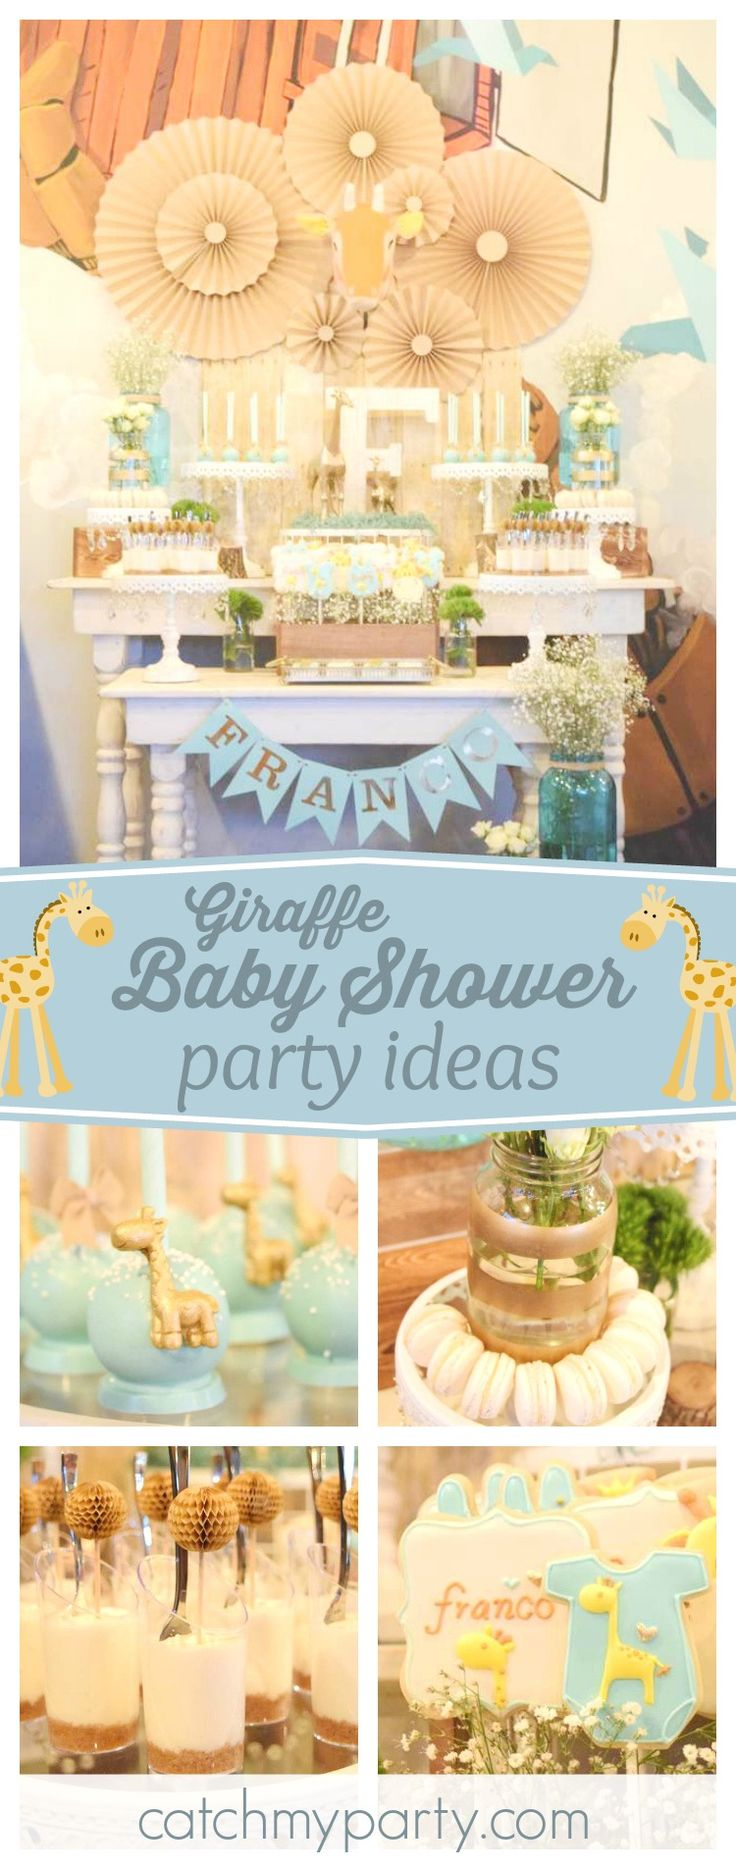 Winnie the pooh baby shower centerpiece ideas 48pc baby shower winnie - Check Out This Cute Giraffe Themed Baby Shower The Dessert Table And Sweet Treats Are